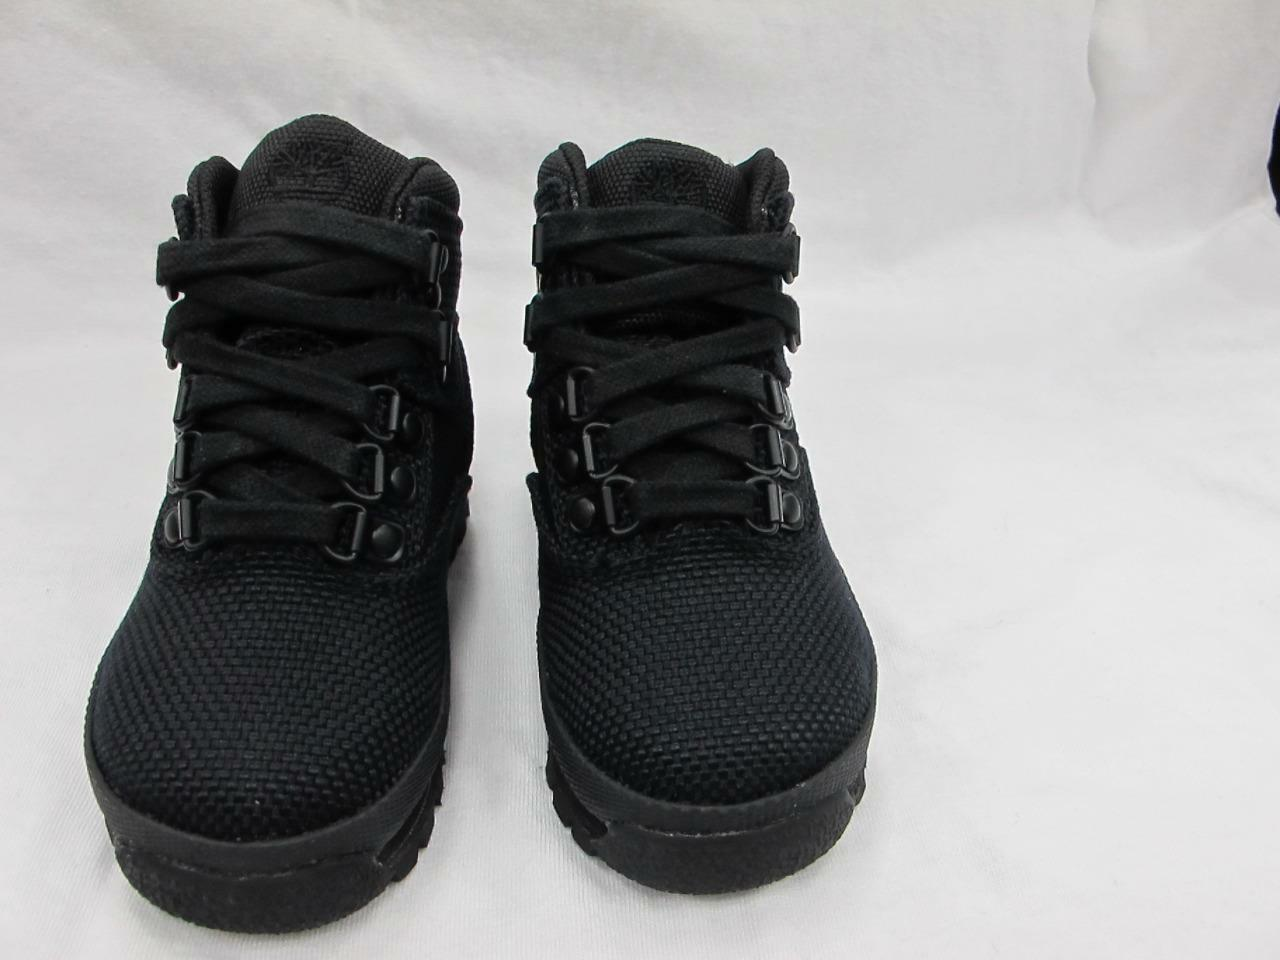 BRAND NEW TODDLERS TIMBERLAND EURO HIKER A17DH 1